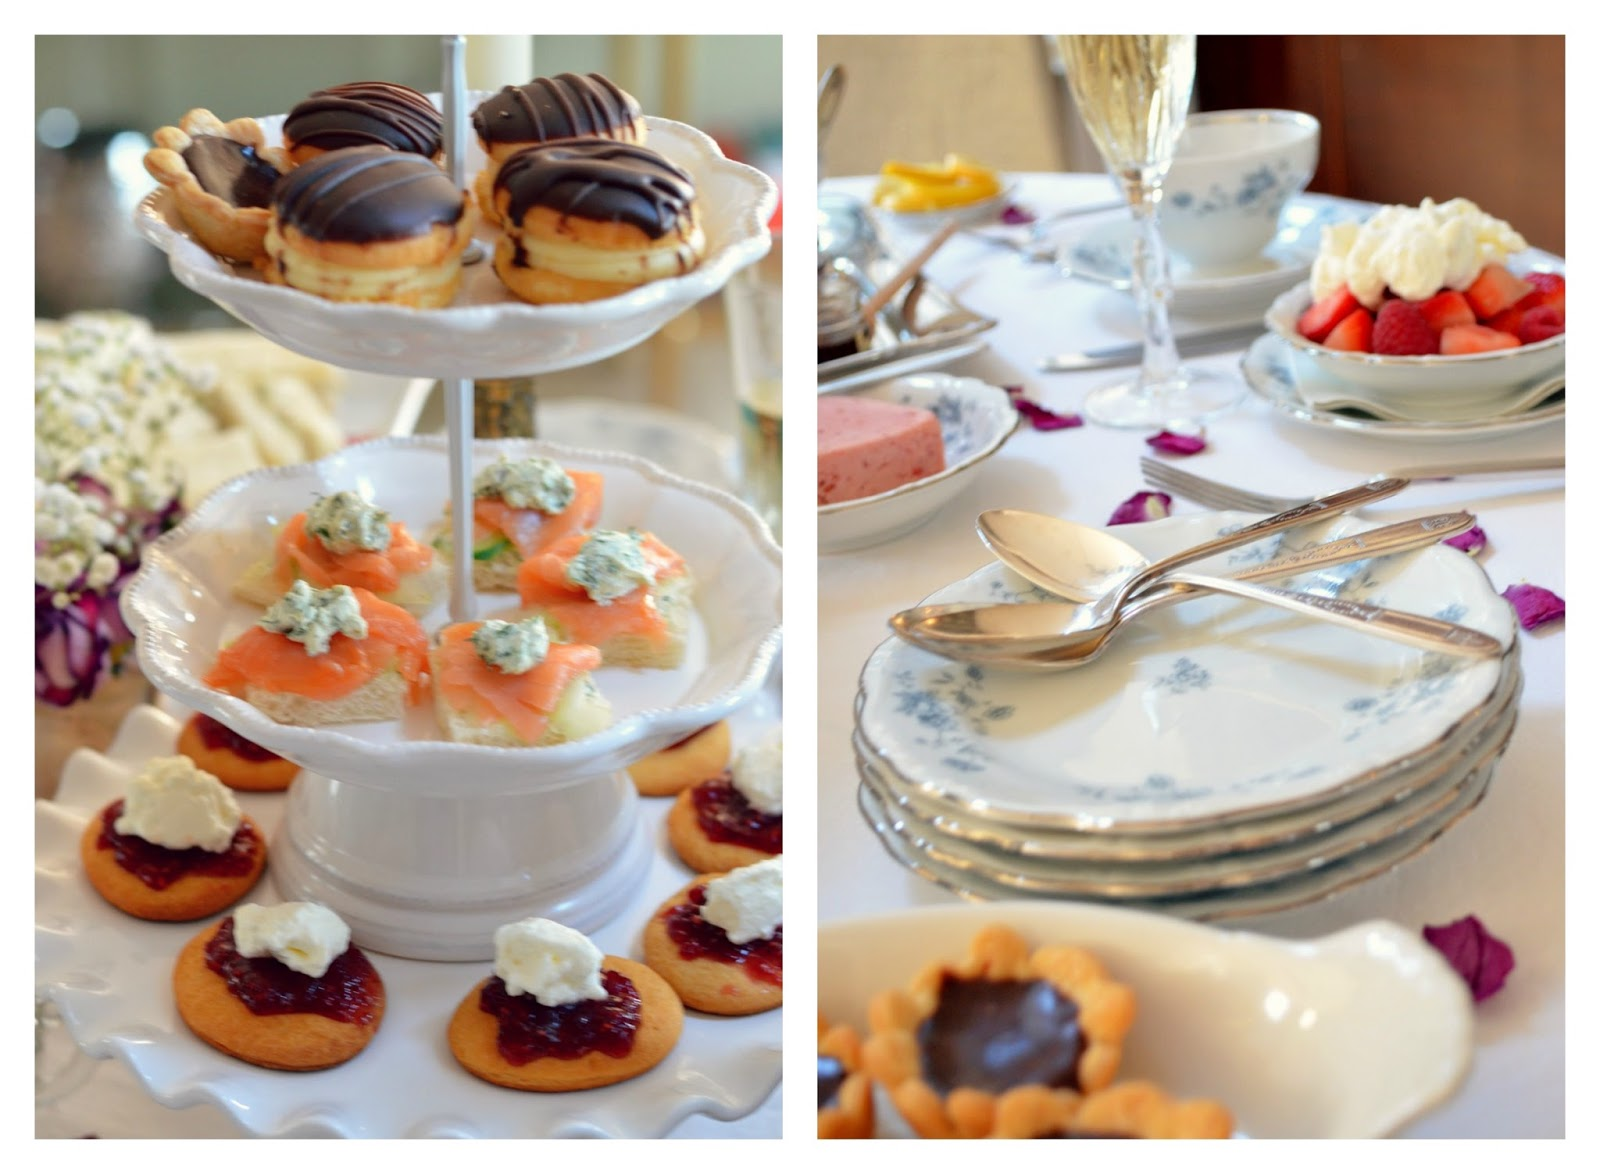 3 Simple How-To Tips for Hosting A Veuve Clicquot Champagne Afternoon High Tea